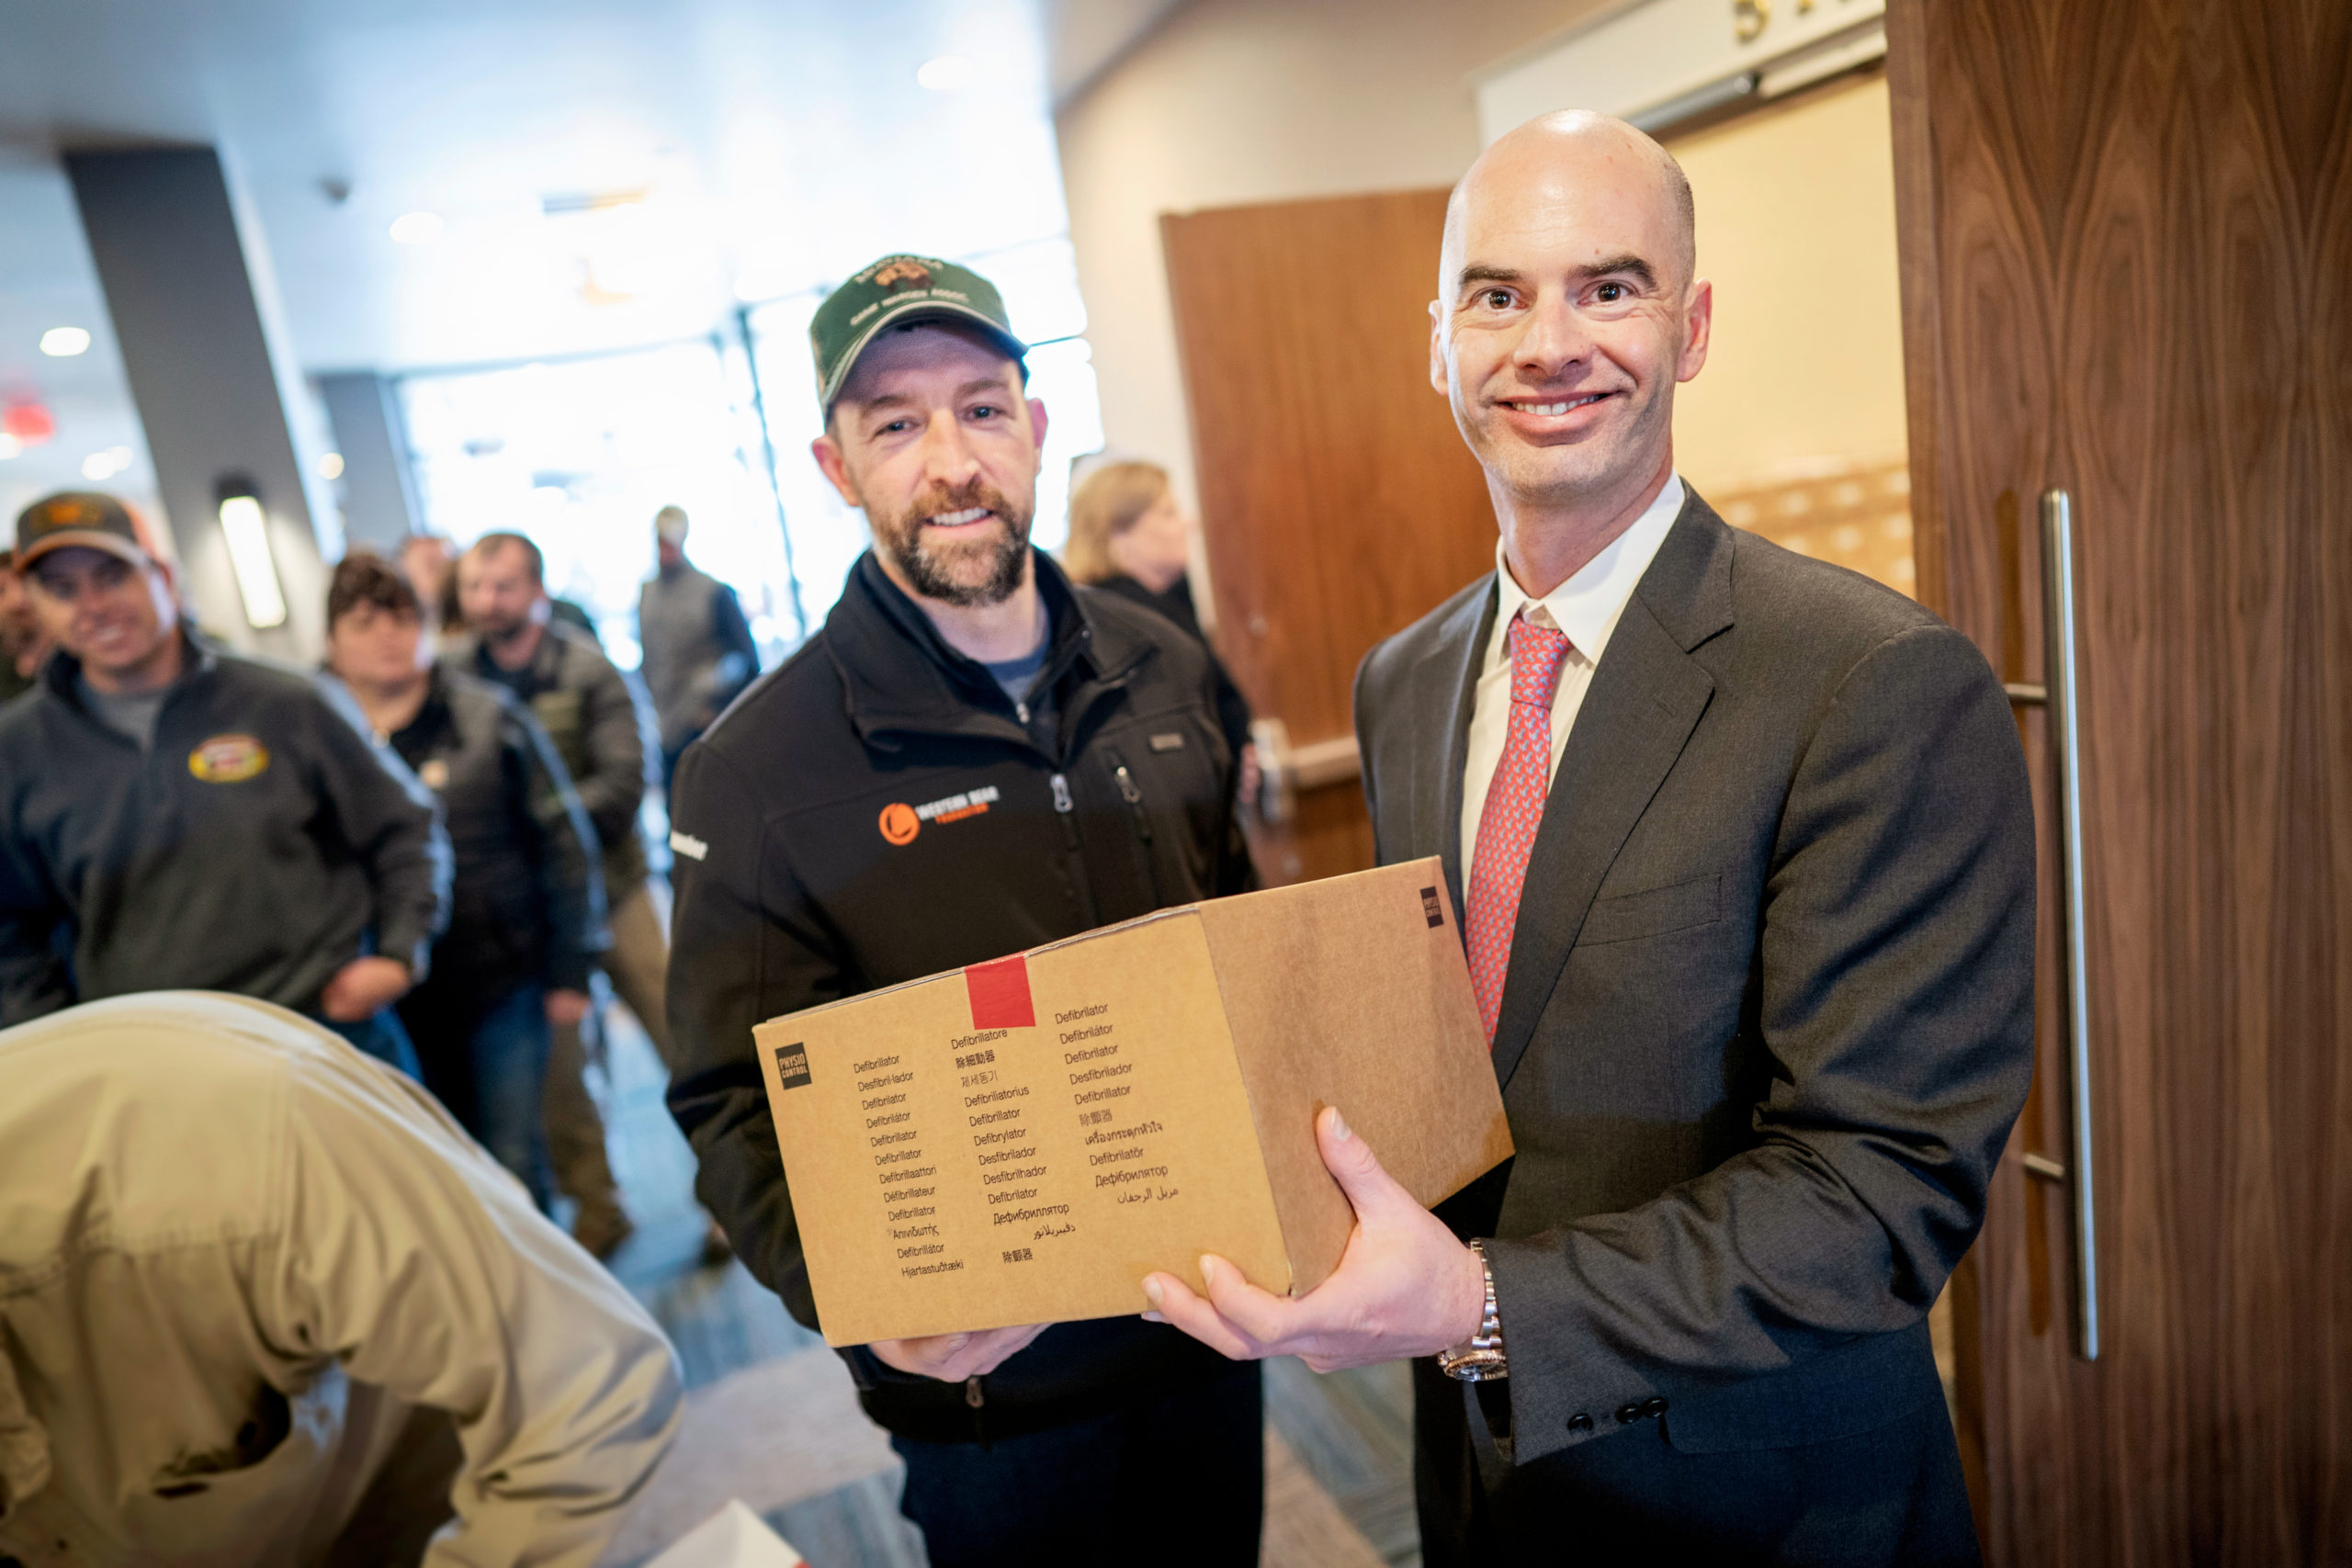 State Receives $6.4 Million from Helmsley Charitable Trust for Automatic Defibrillator Devices